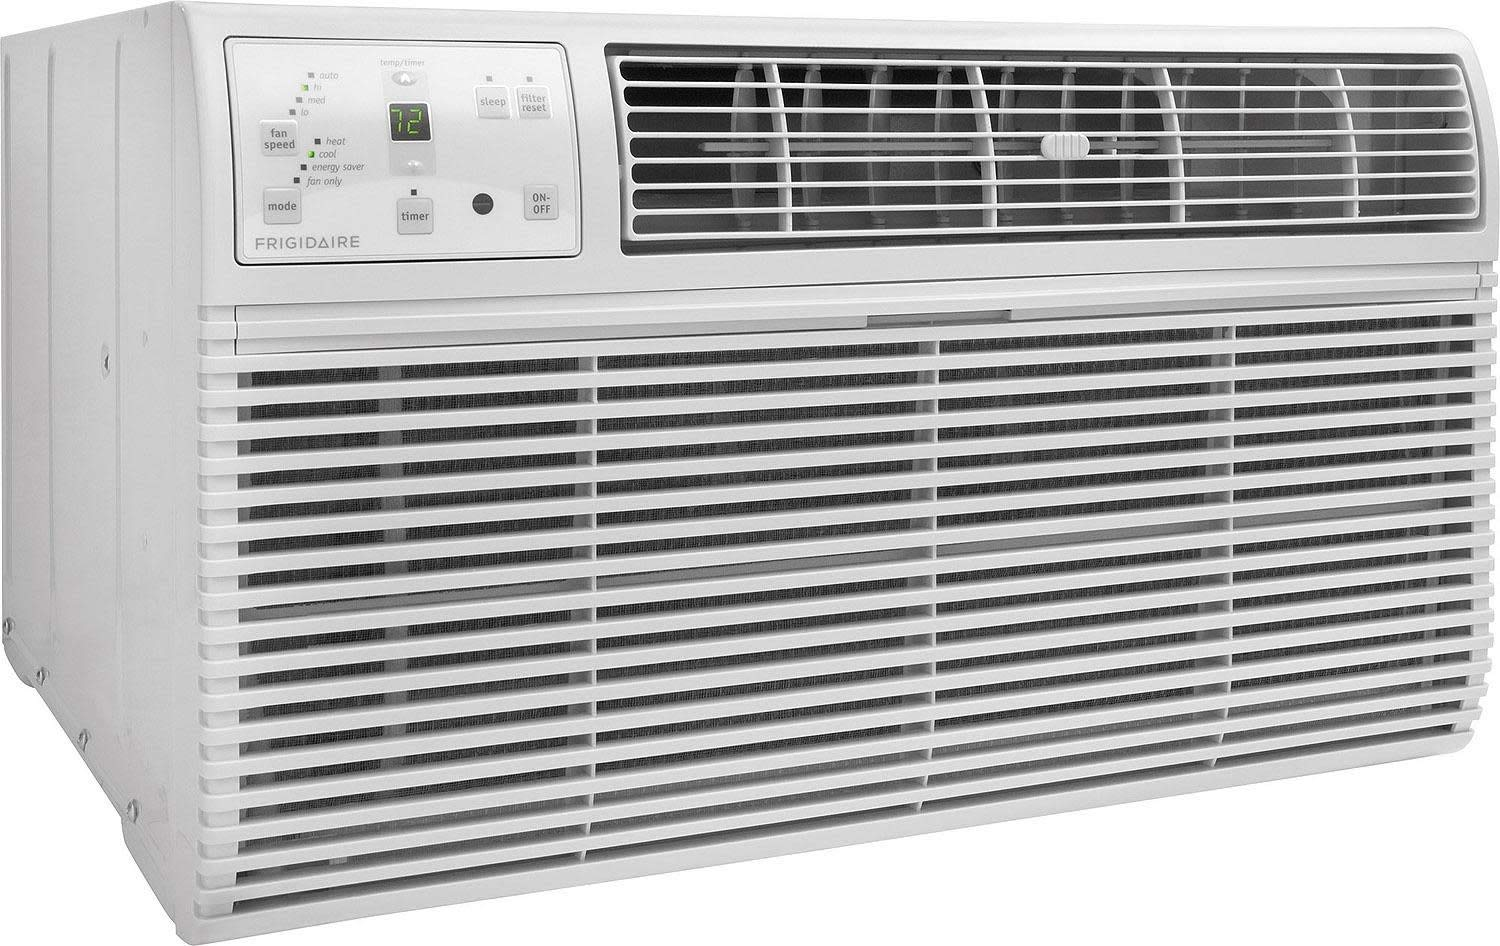 Frigidaire Ffta1033s1 Wall Air Conditioner Ac Cool Only 10k Btu 115v Remote and Energy Star